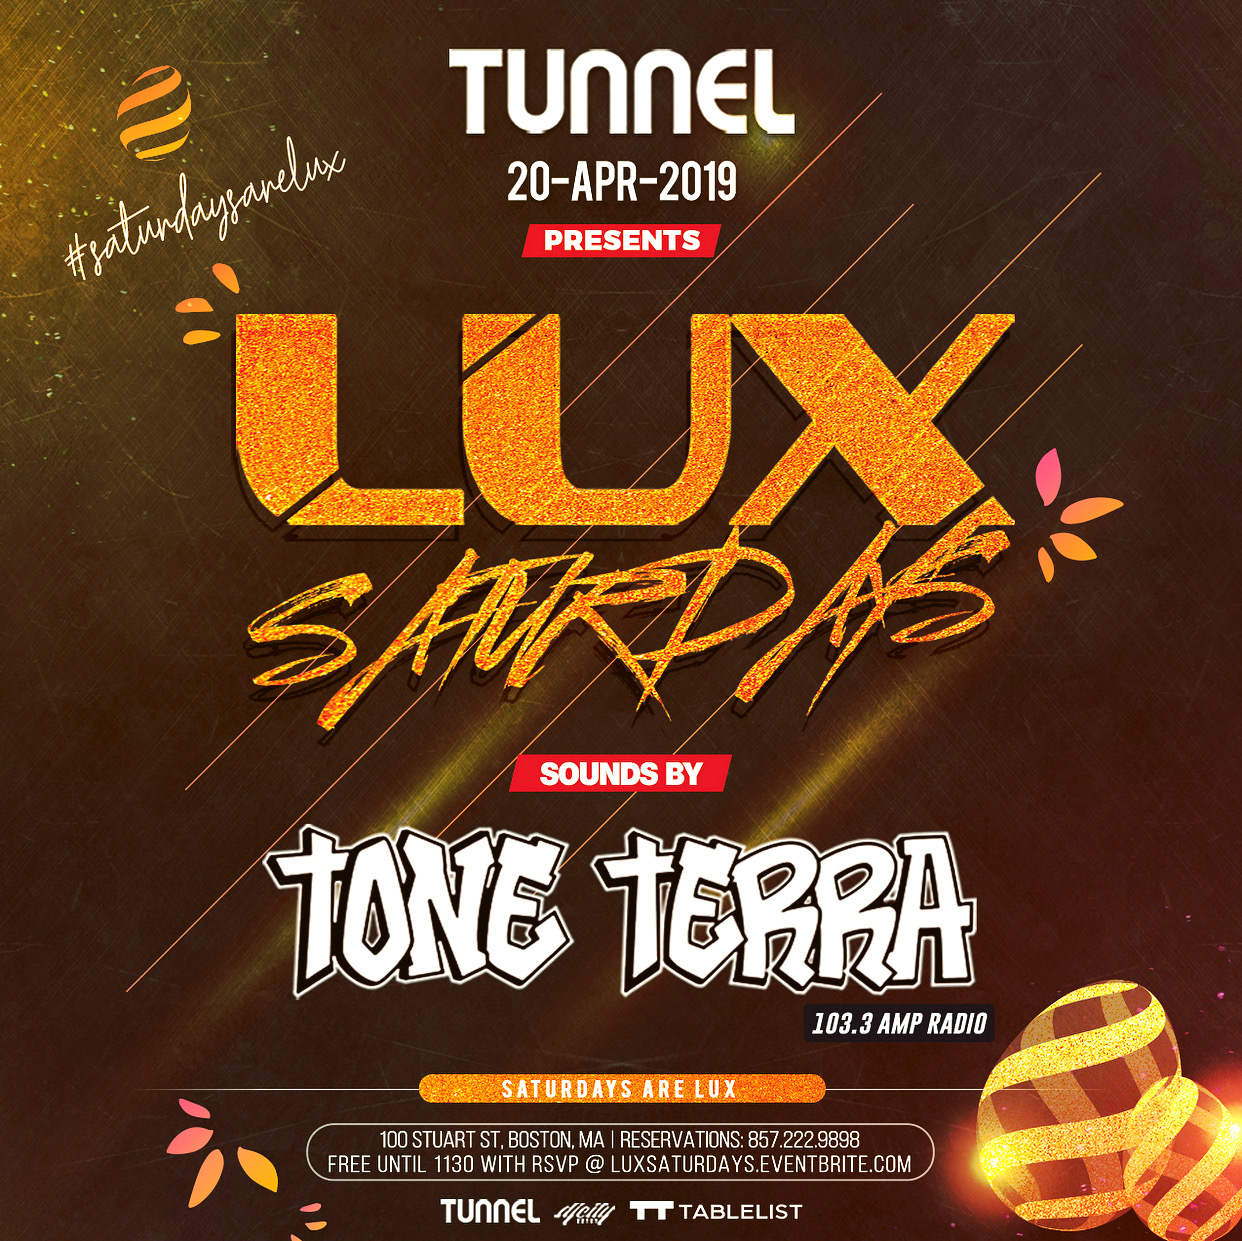 TUNNEL-042019